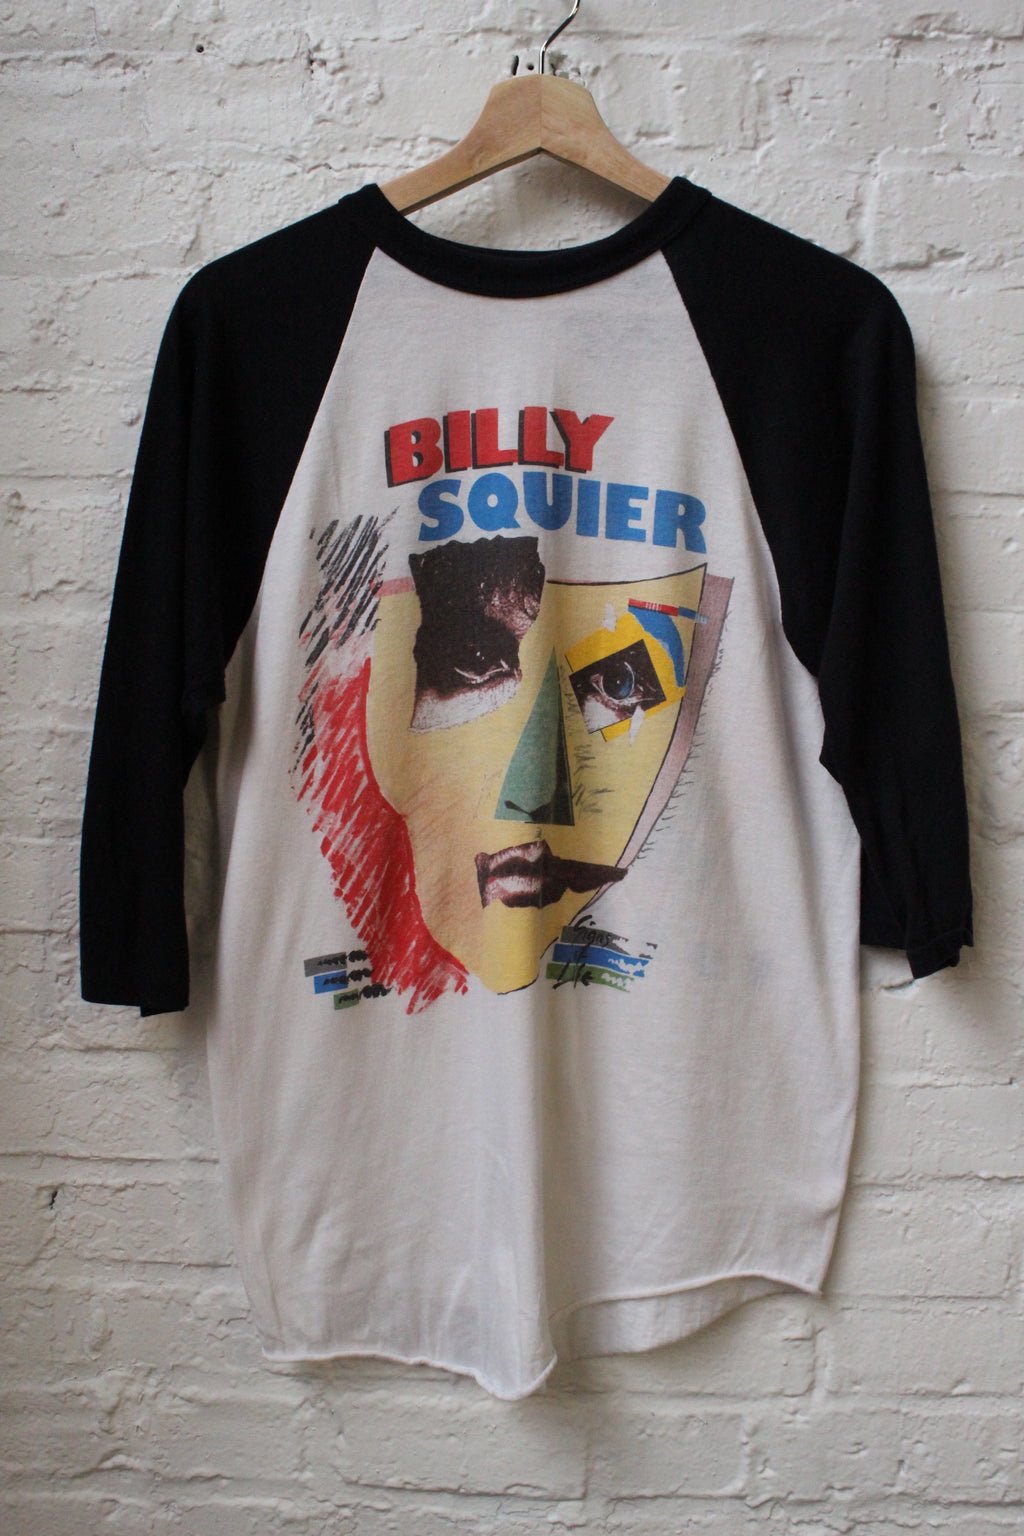 Billy Squier 1984 Tour Raglan Tee